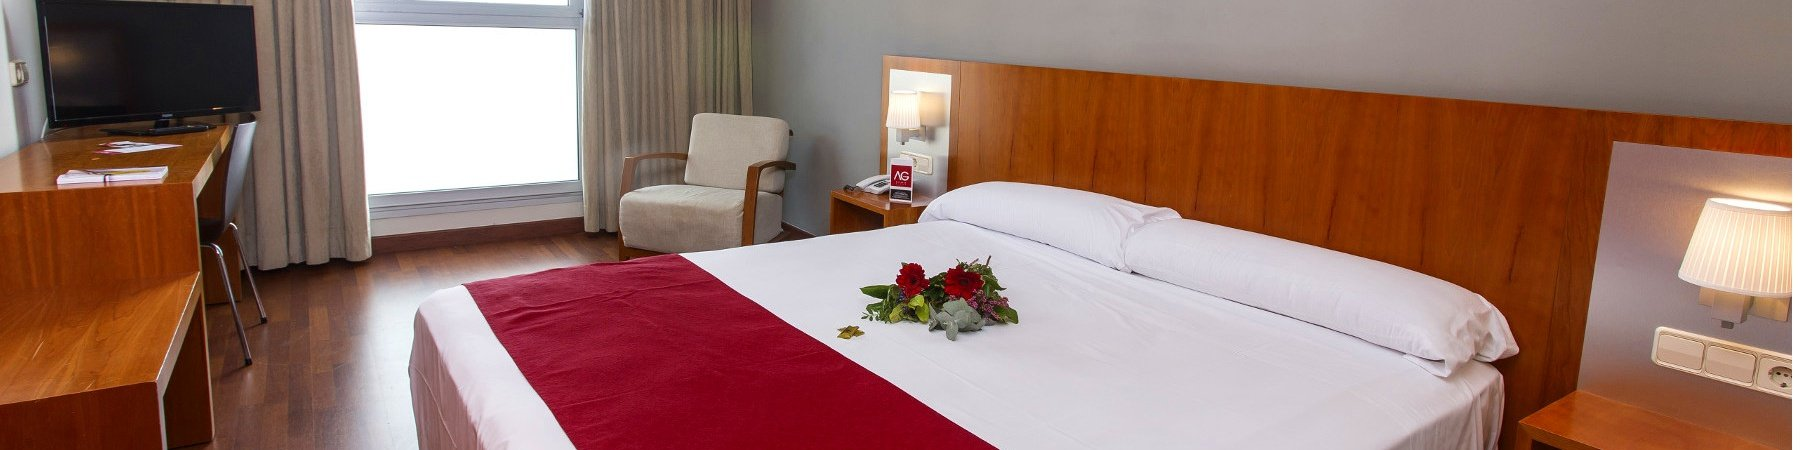 Rooms - AG Express Elche Sercotel Hotel